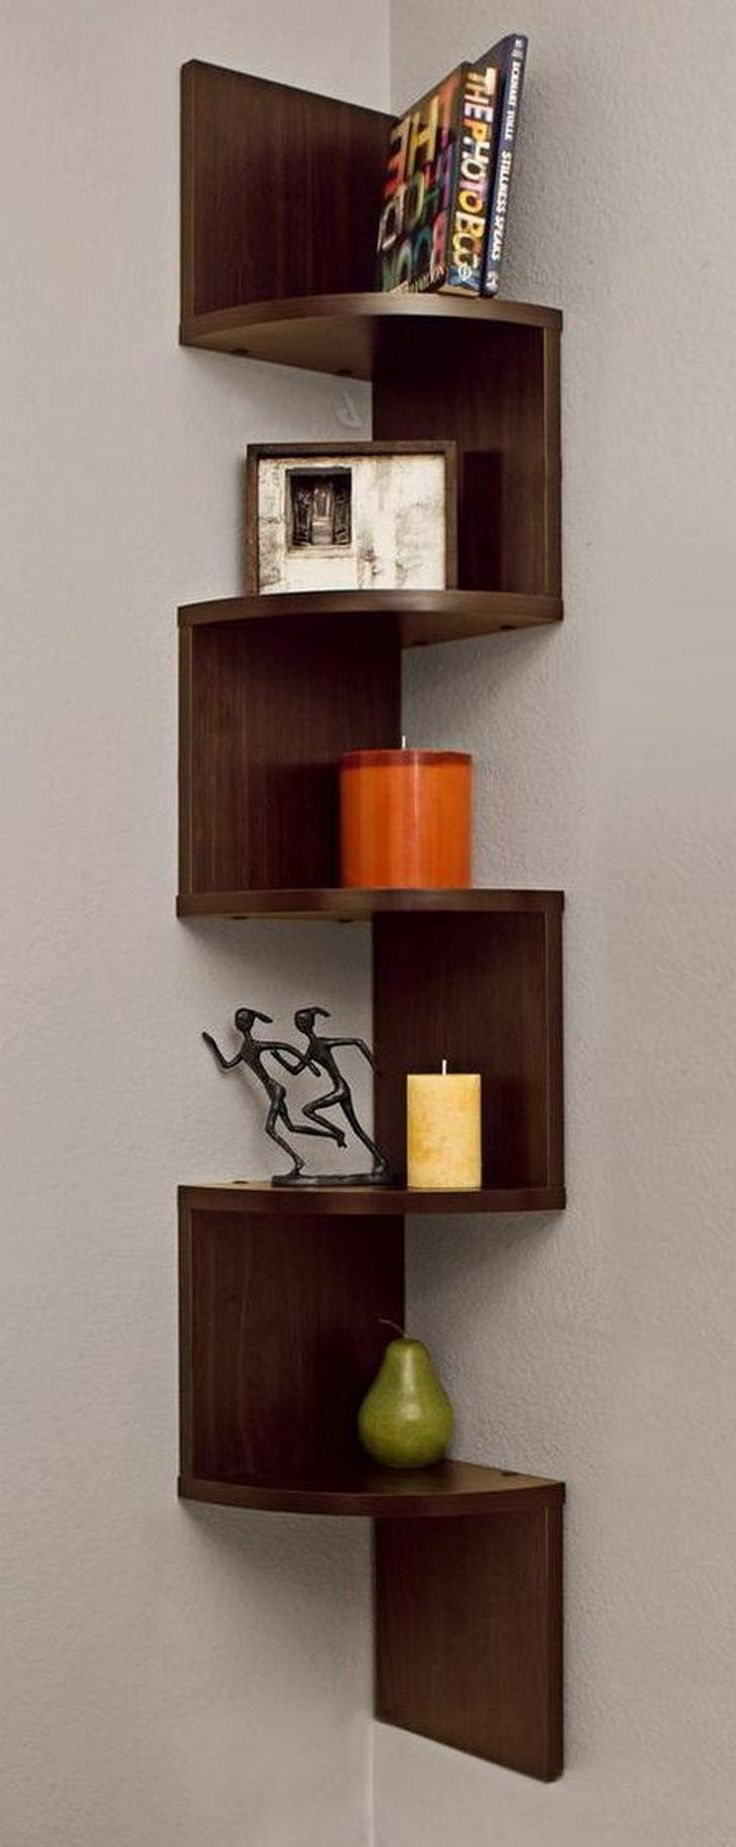 corner showcase designs for living room. Best 25  Wooden corner shelf ideas on Pinterest Corner wall shelves design and Shelves